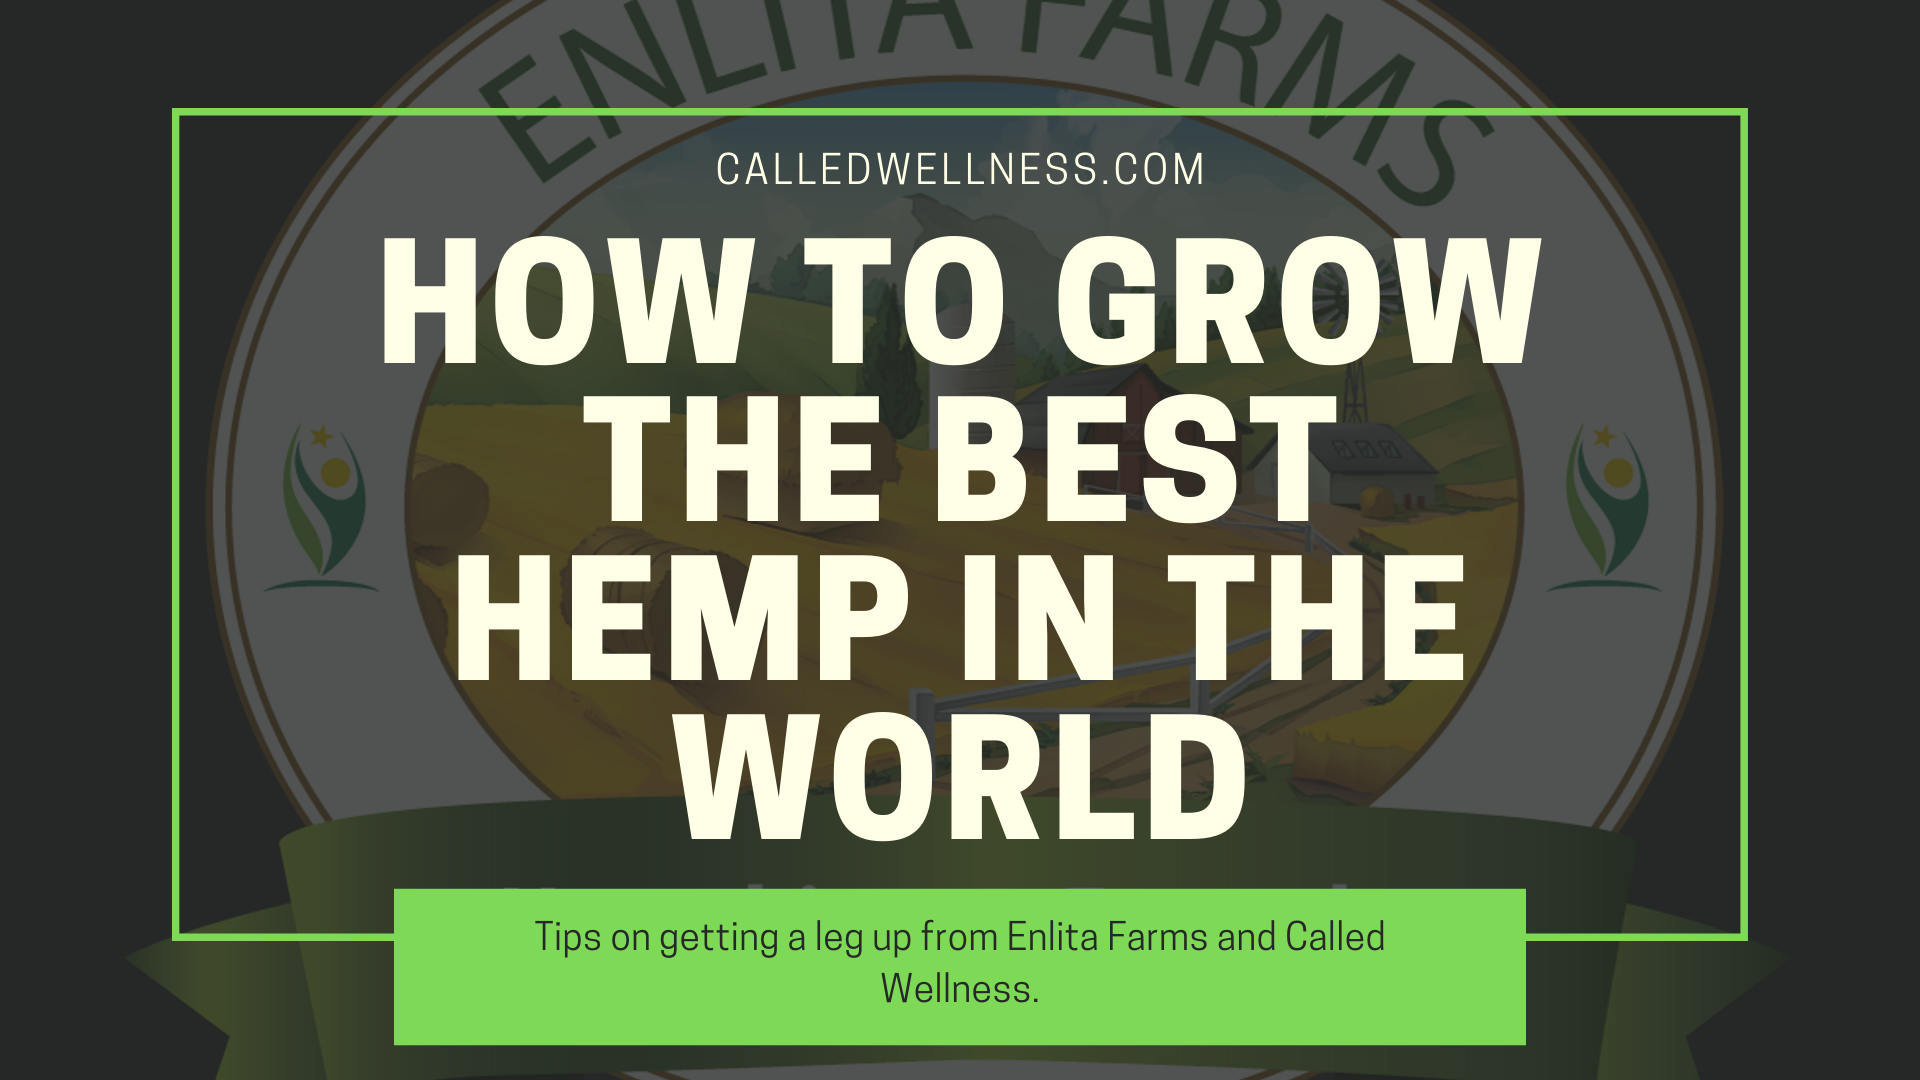 How to grow the best hemp in the world